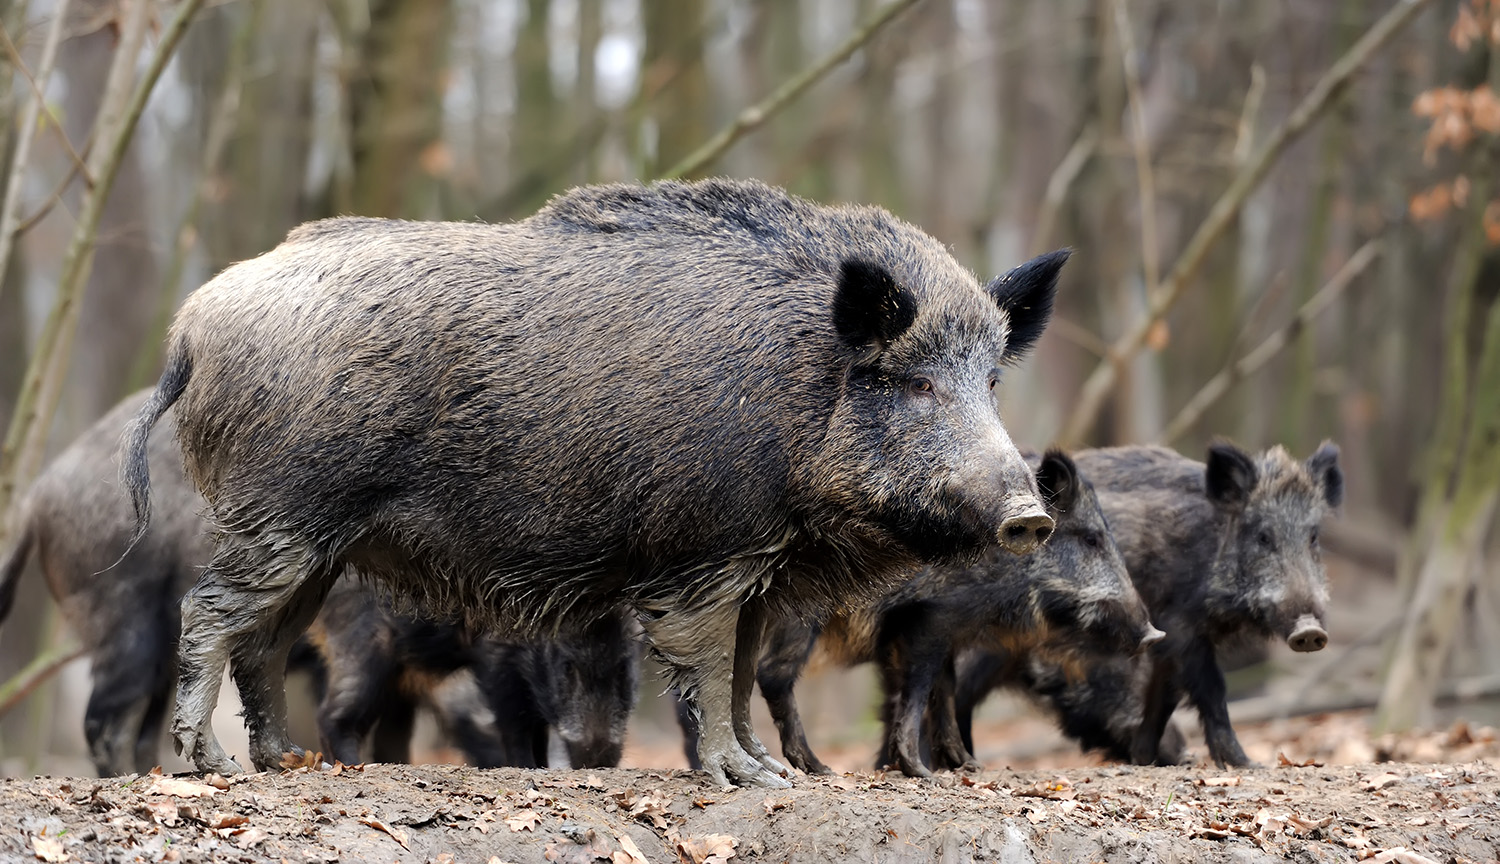 Wild boar with cubs. Photo